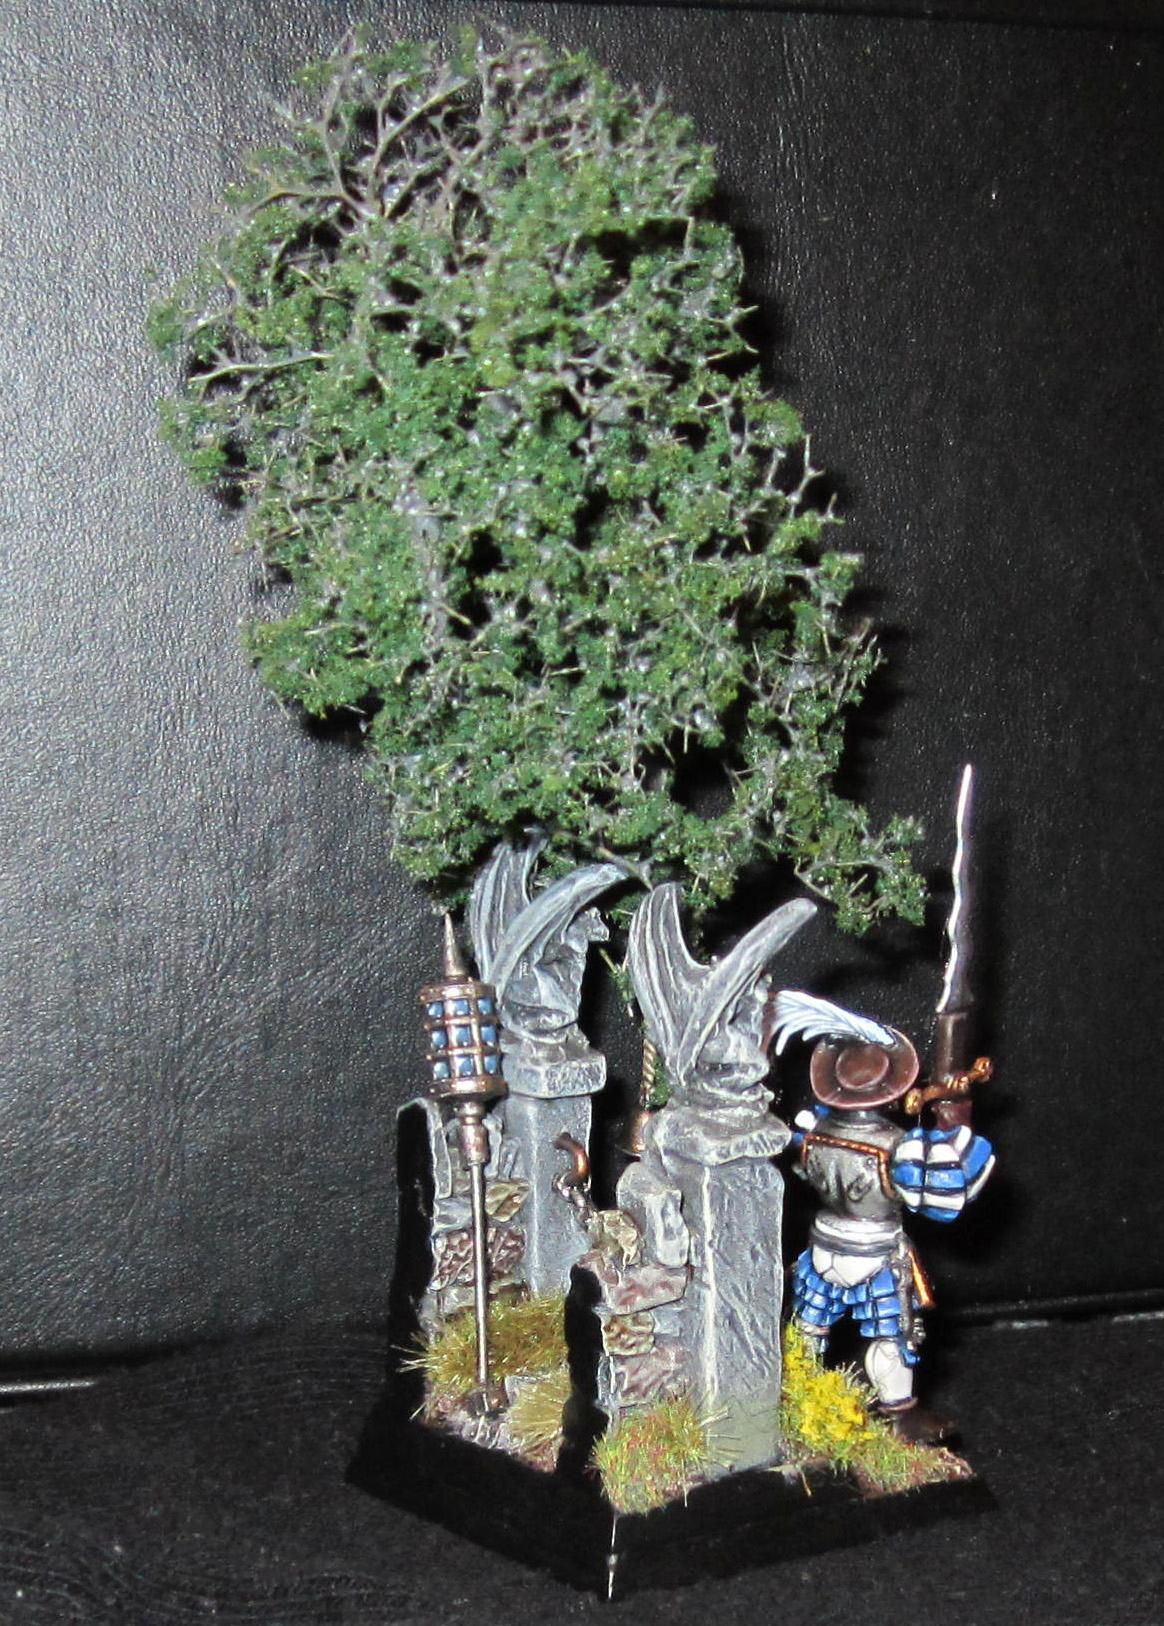 Diorama, Empire, Great, Soldier, Swords, Warhammer Fantasy